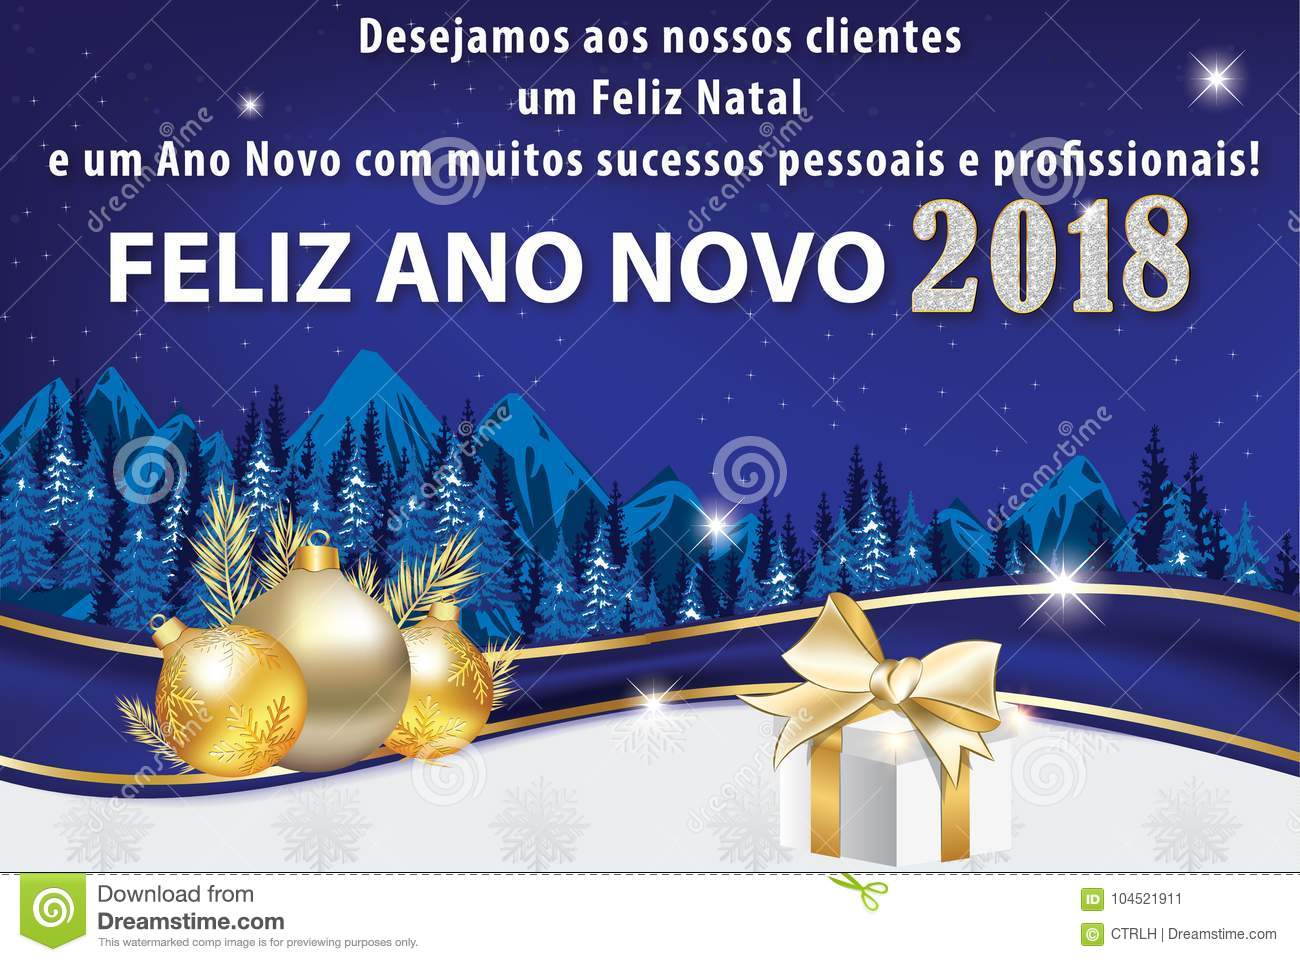 Corporate holiday season greeting card designed for portuguese download corporate holiday season greeting card designed for portuguese speaking clients stock illustration illustration of m4hsunfo